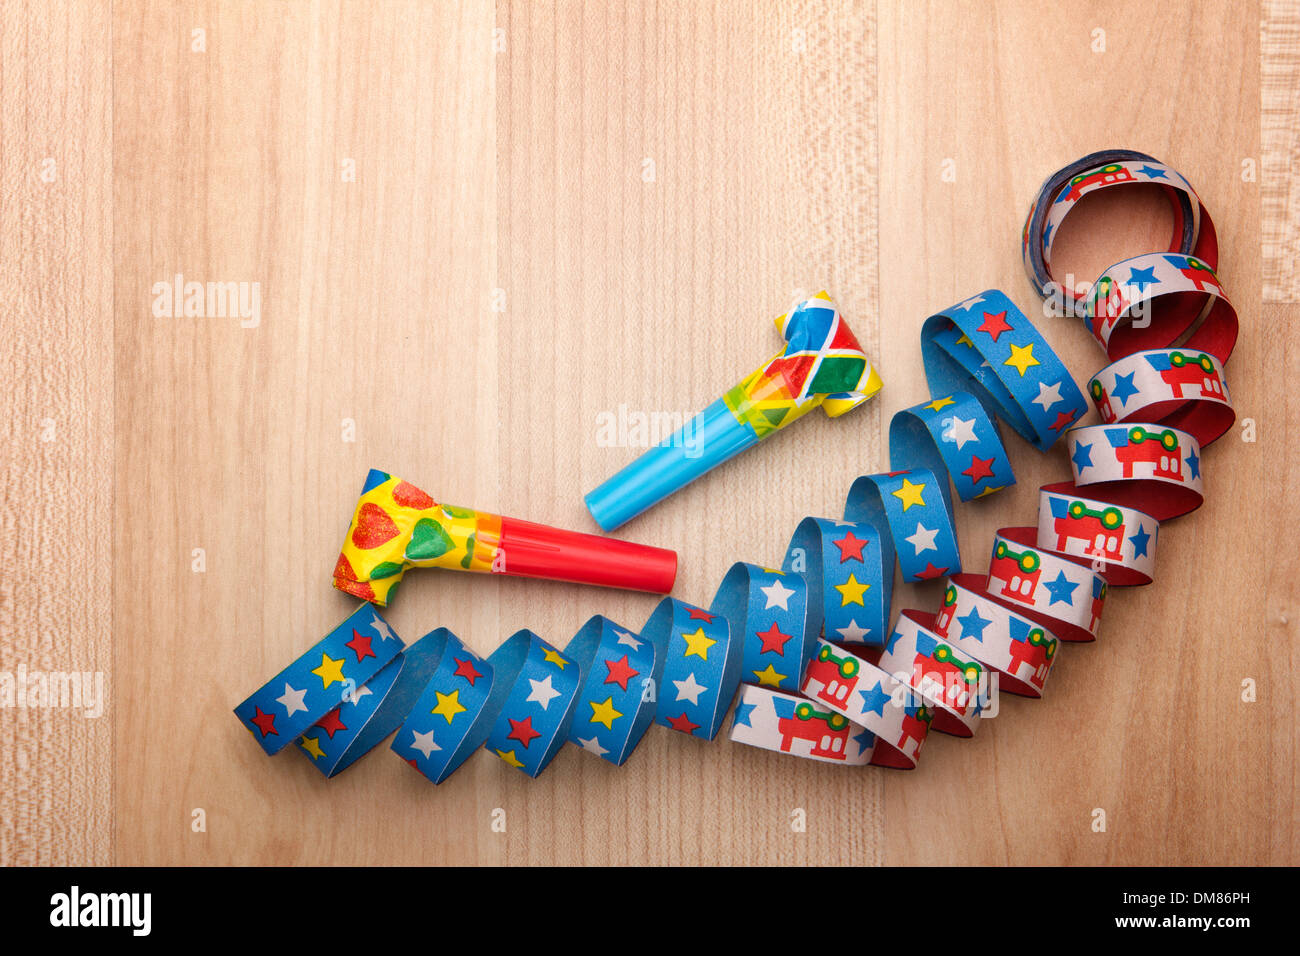 streamers and confetti as decoration for parties, sylvester with wooden background - Stock Image